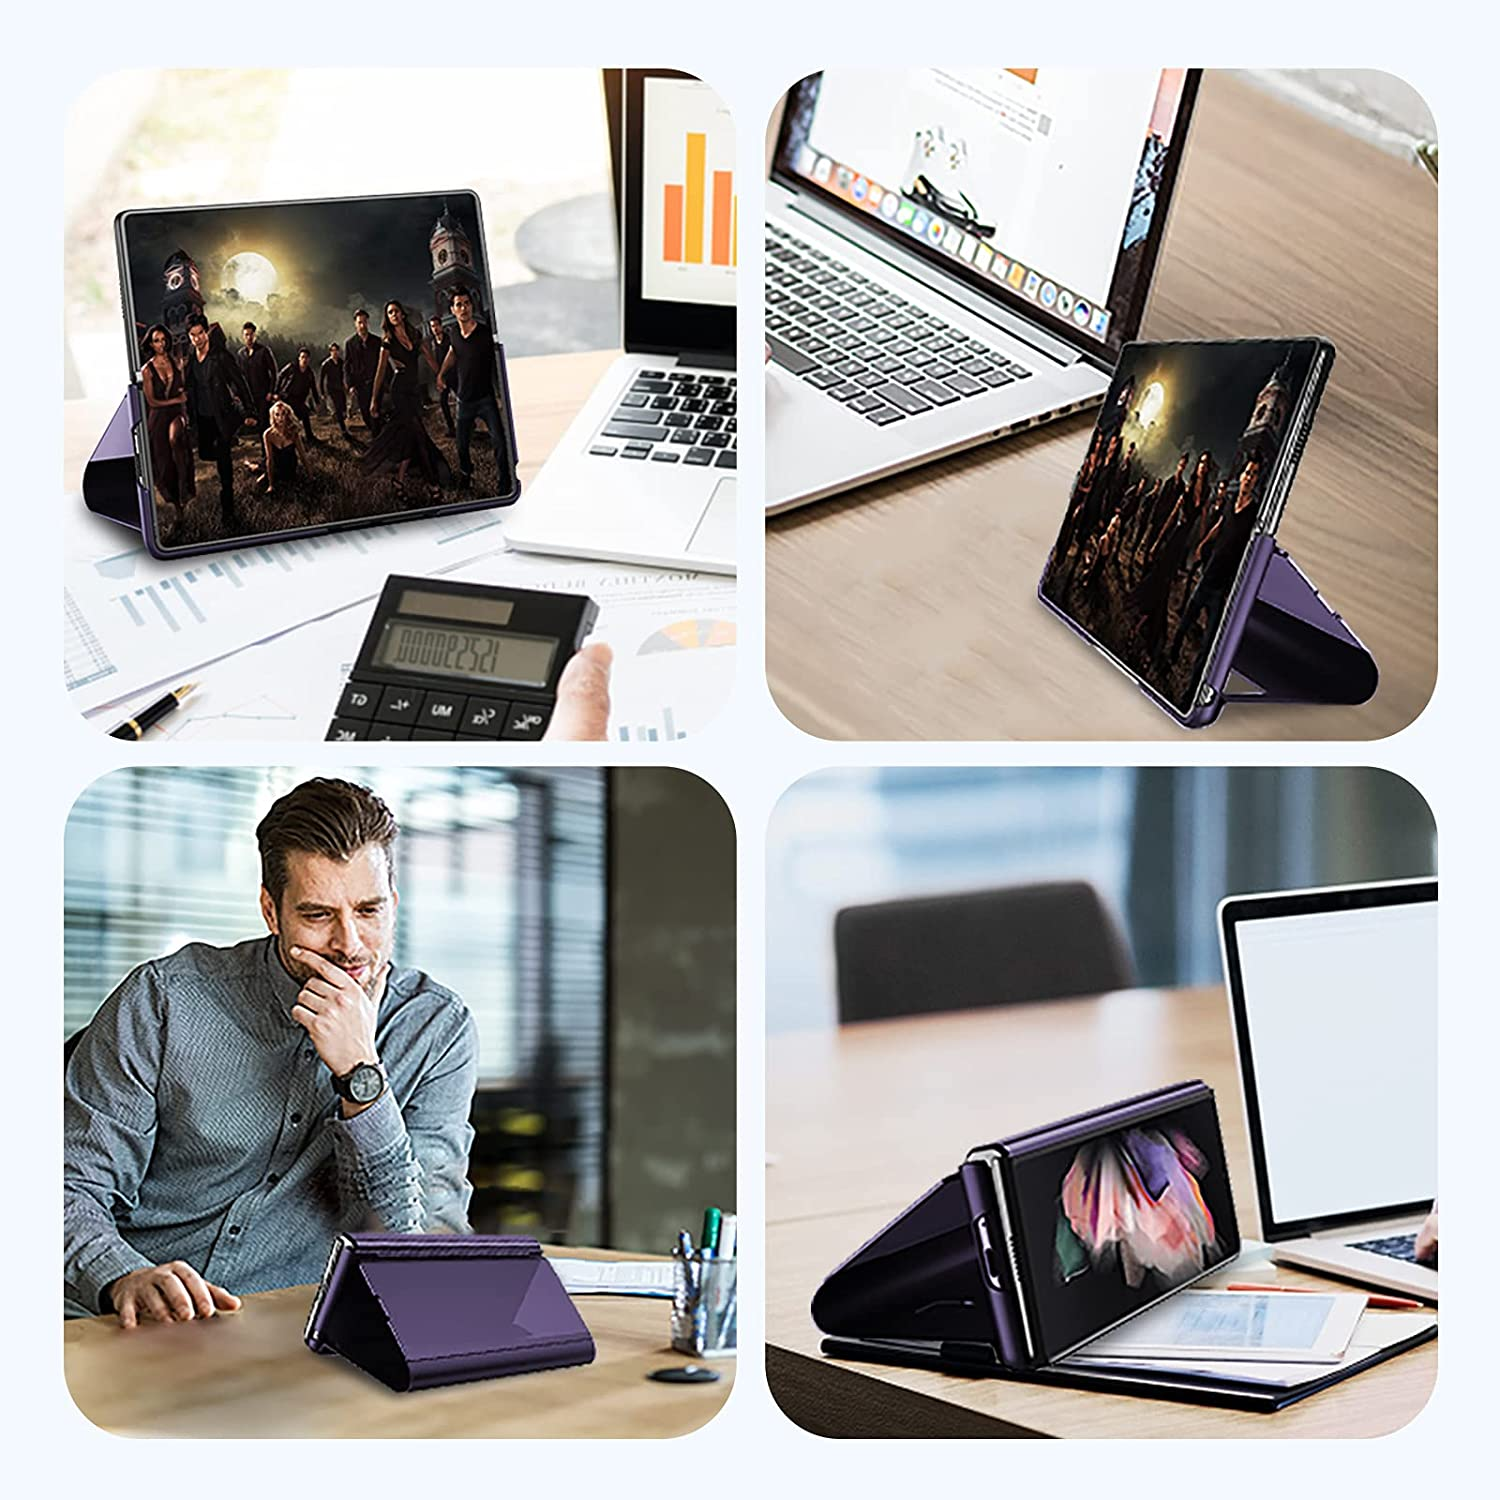 Compatible with Samsung Galaxy Z Fold 3 Case Flip Leather Cover Wallet Slim Clear S-View Mirror Shockproof Thin Cover with Kickstand Anti-Scratch Protective Case Cover for Samsung Z Fold 3 5G